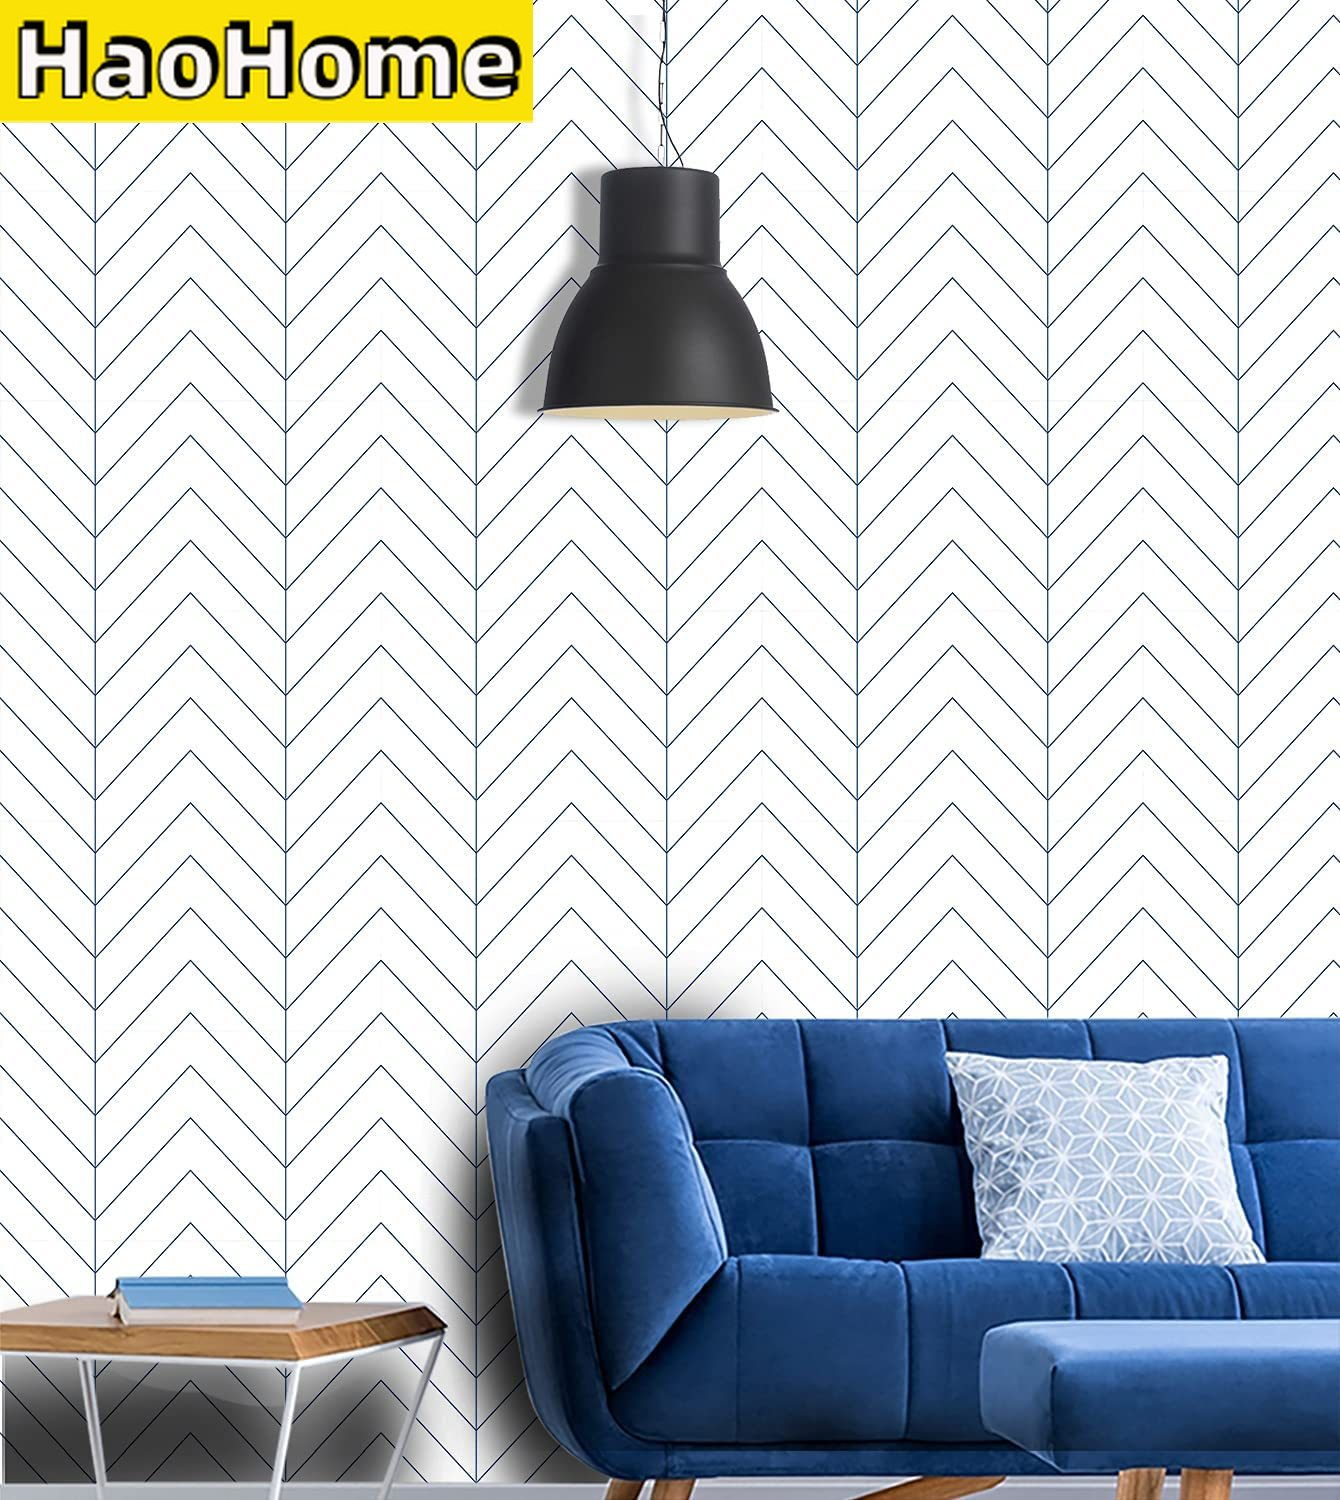 Blue Herringbone Self Adhesive Wallpaper Blue Stripes Peel and Stick Wallpaper Removable Waterproof Wall Stickers for Home Decor